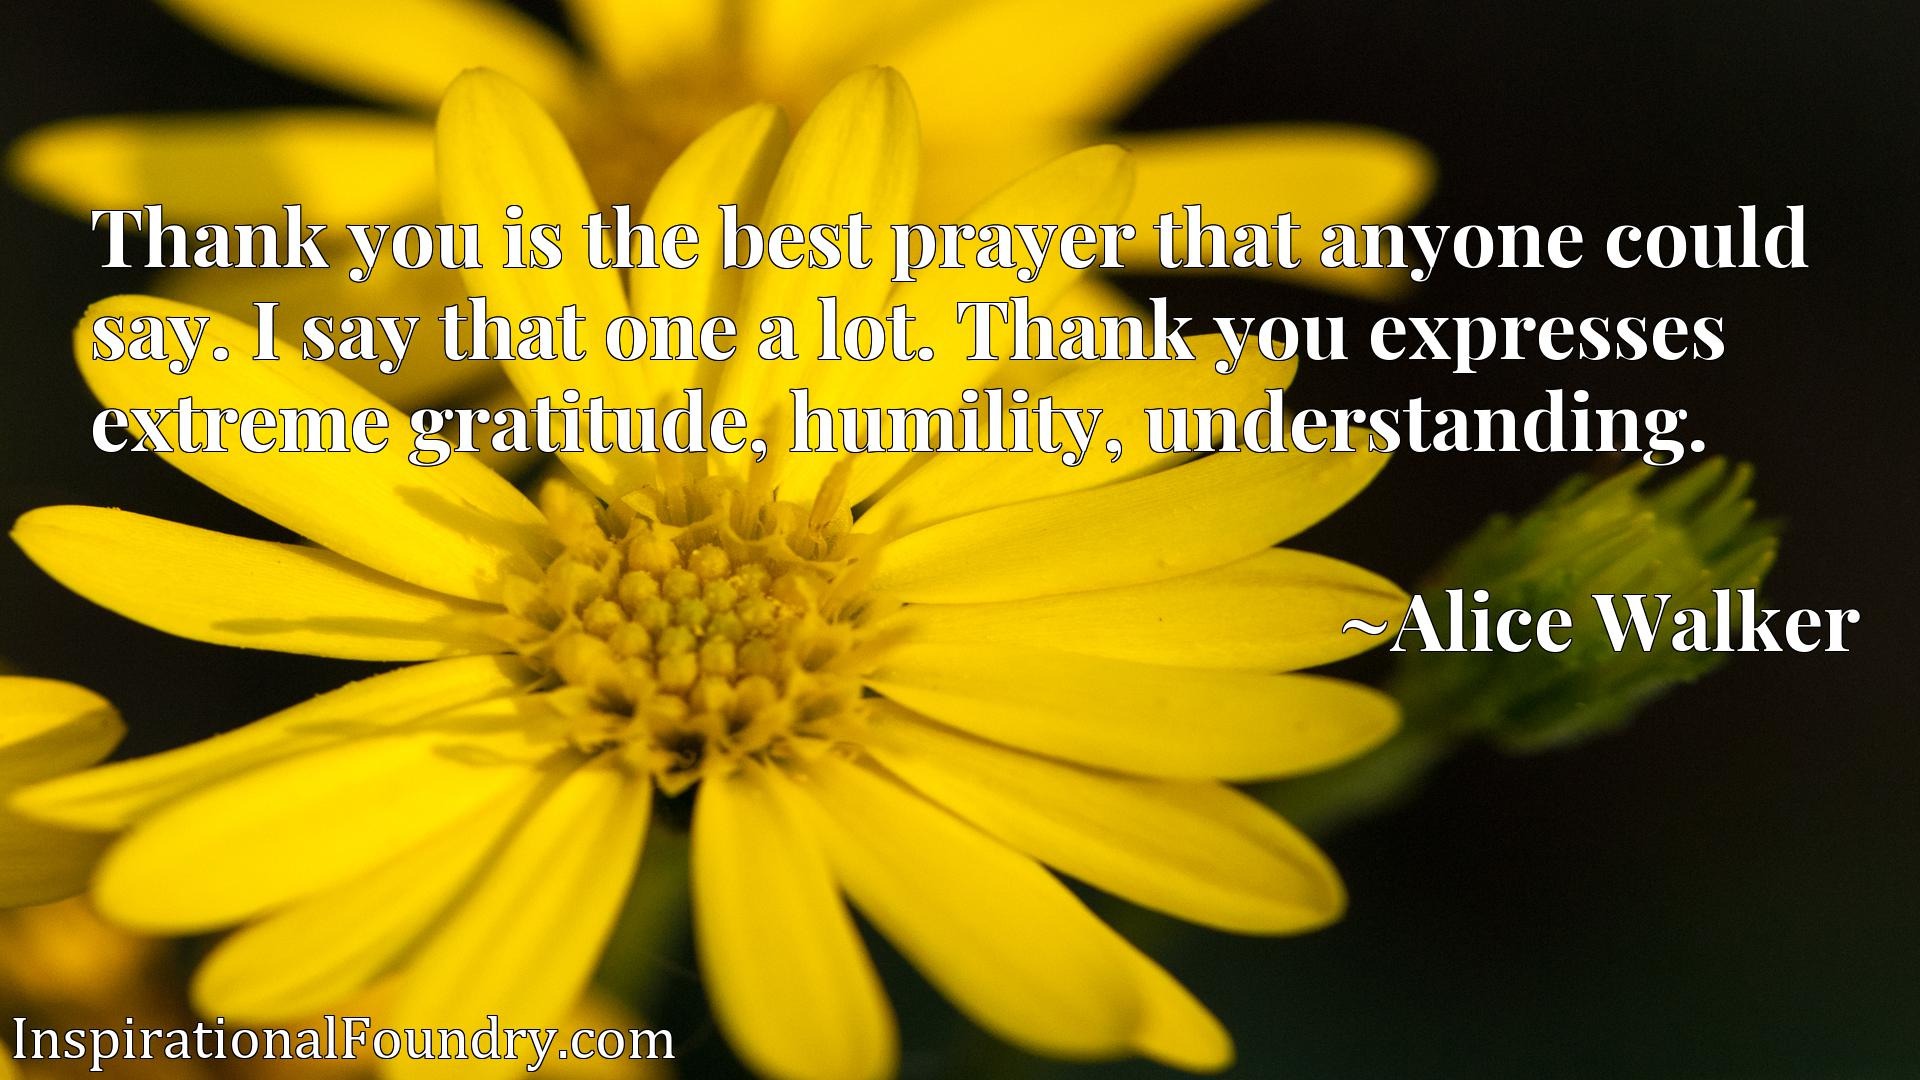 Thank you is the best prayer that anyone could say. I say that one a lot. Thank you expresses extreme gratitude, humility, understanding.